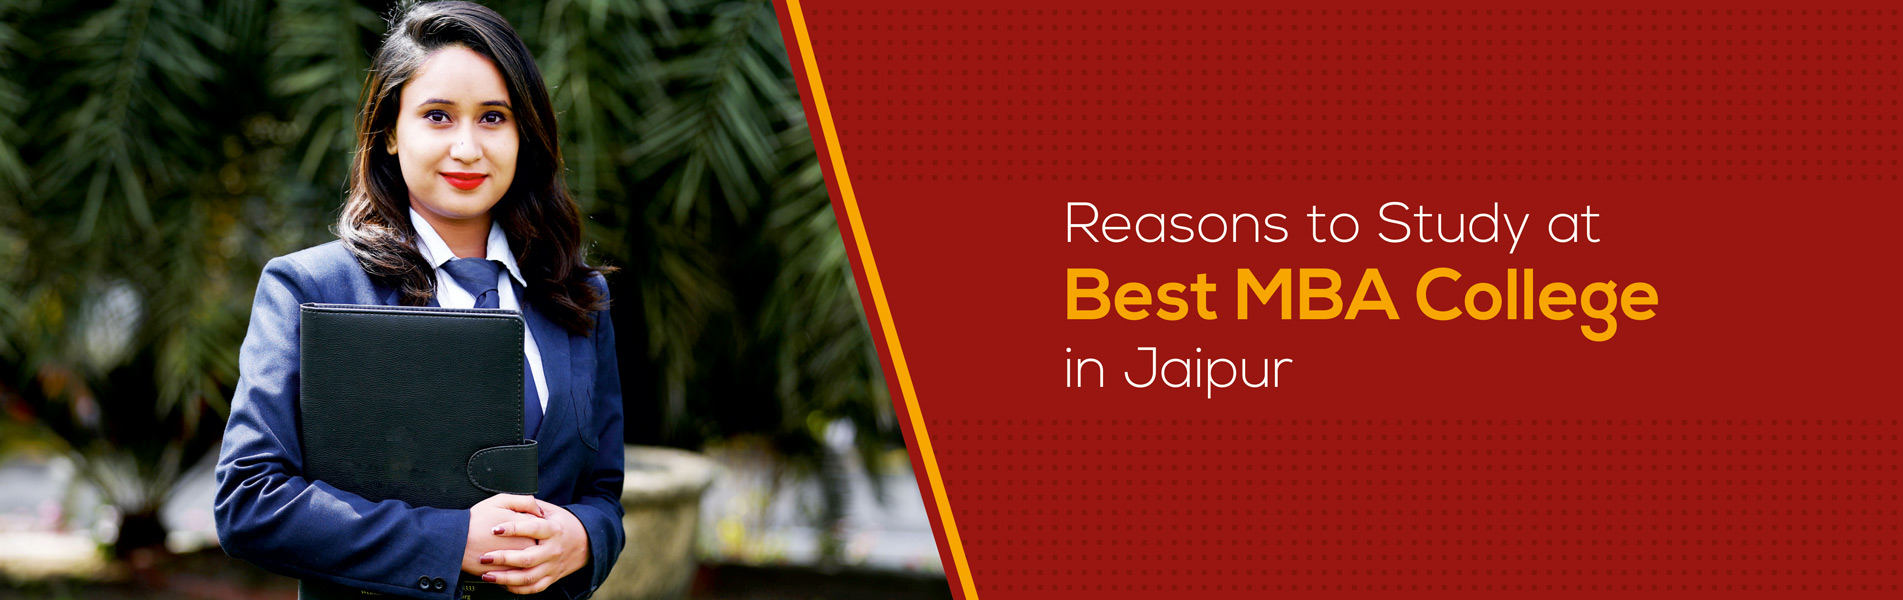 Reason-to-Study-at-Best-MBA-College-in-Jaipur